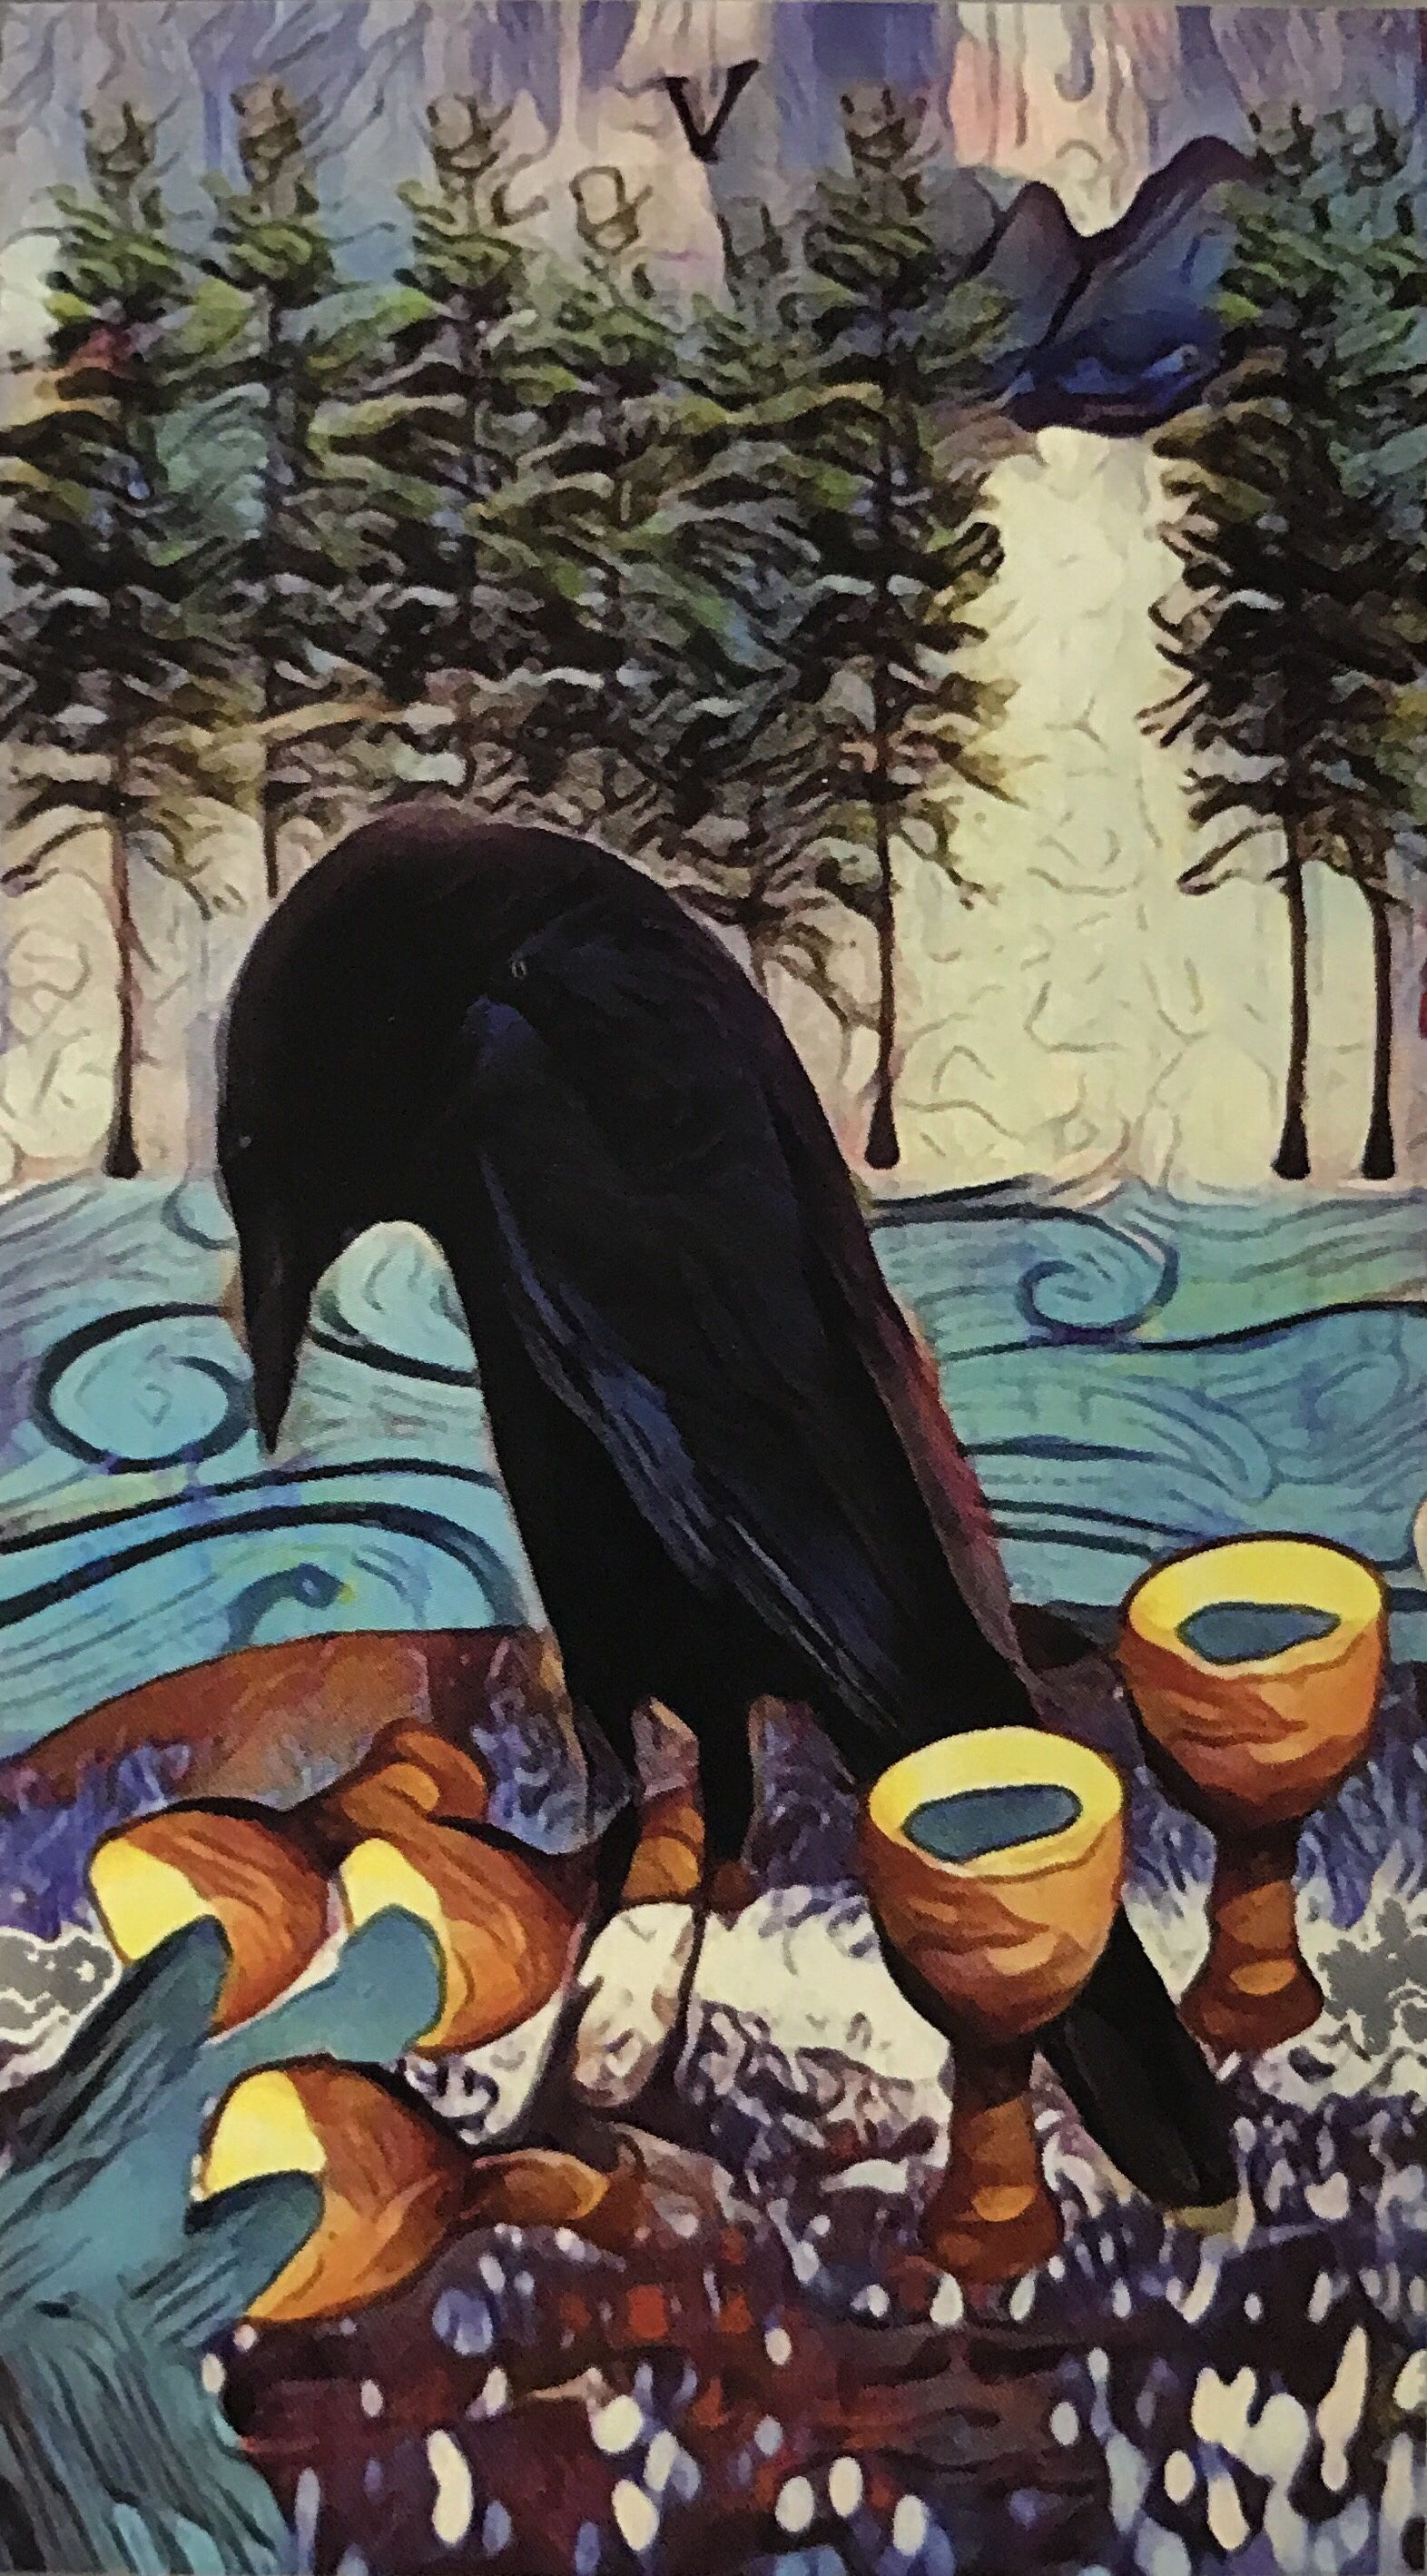 Featured card of the day 5 of cups crow tarot by mj